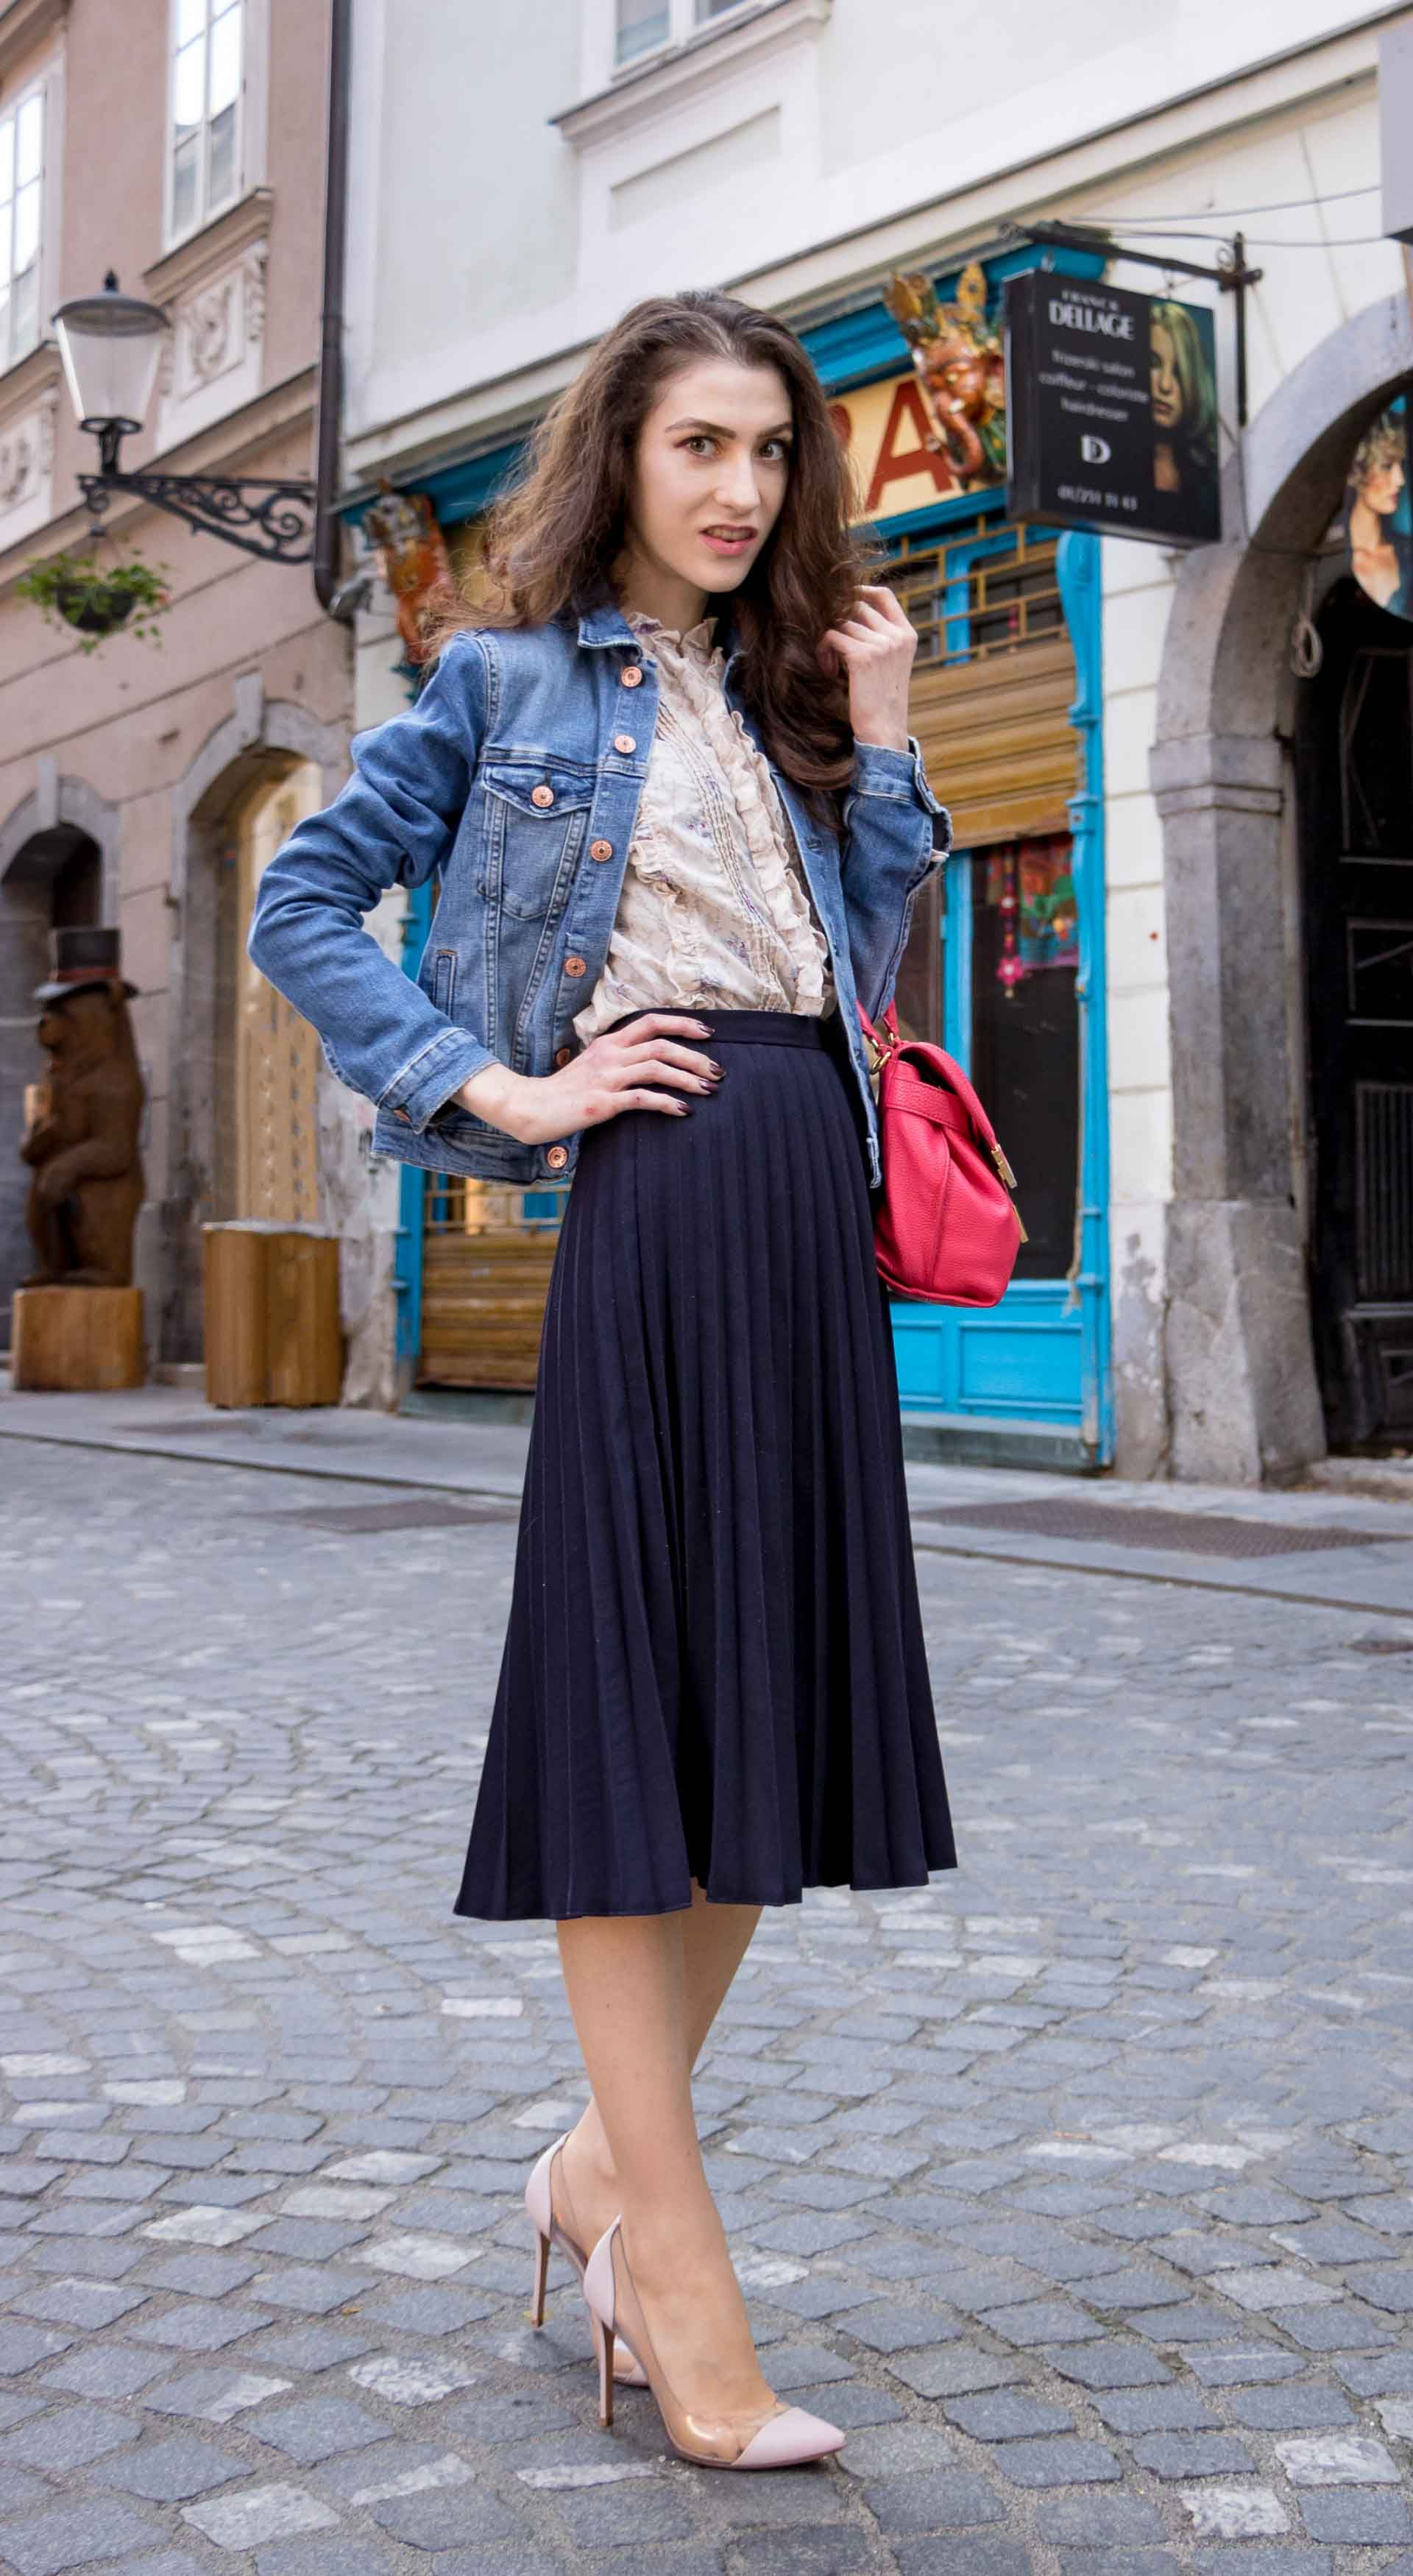 4228baeb68 Fashion Blogger Veronika Lipar of Brunette from Wall Street sharing how to  look chic in elegant pleated midi skirt for brunch #fashion #blogpost #chic  ...